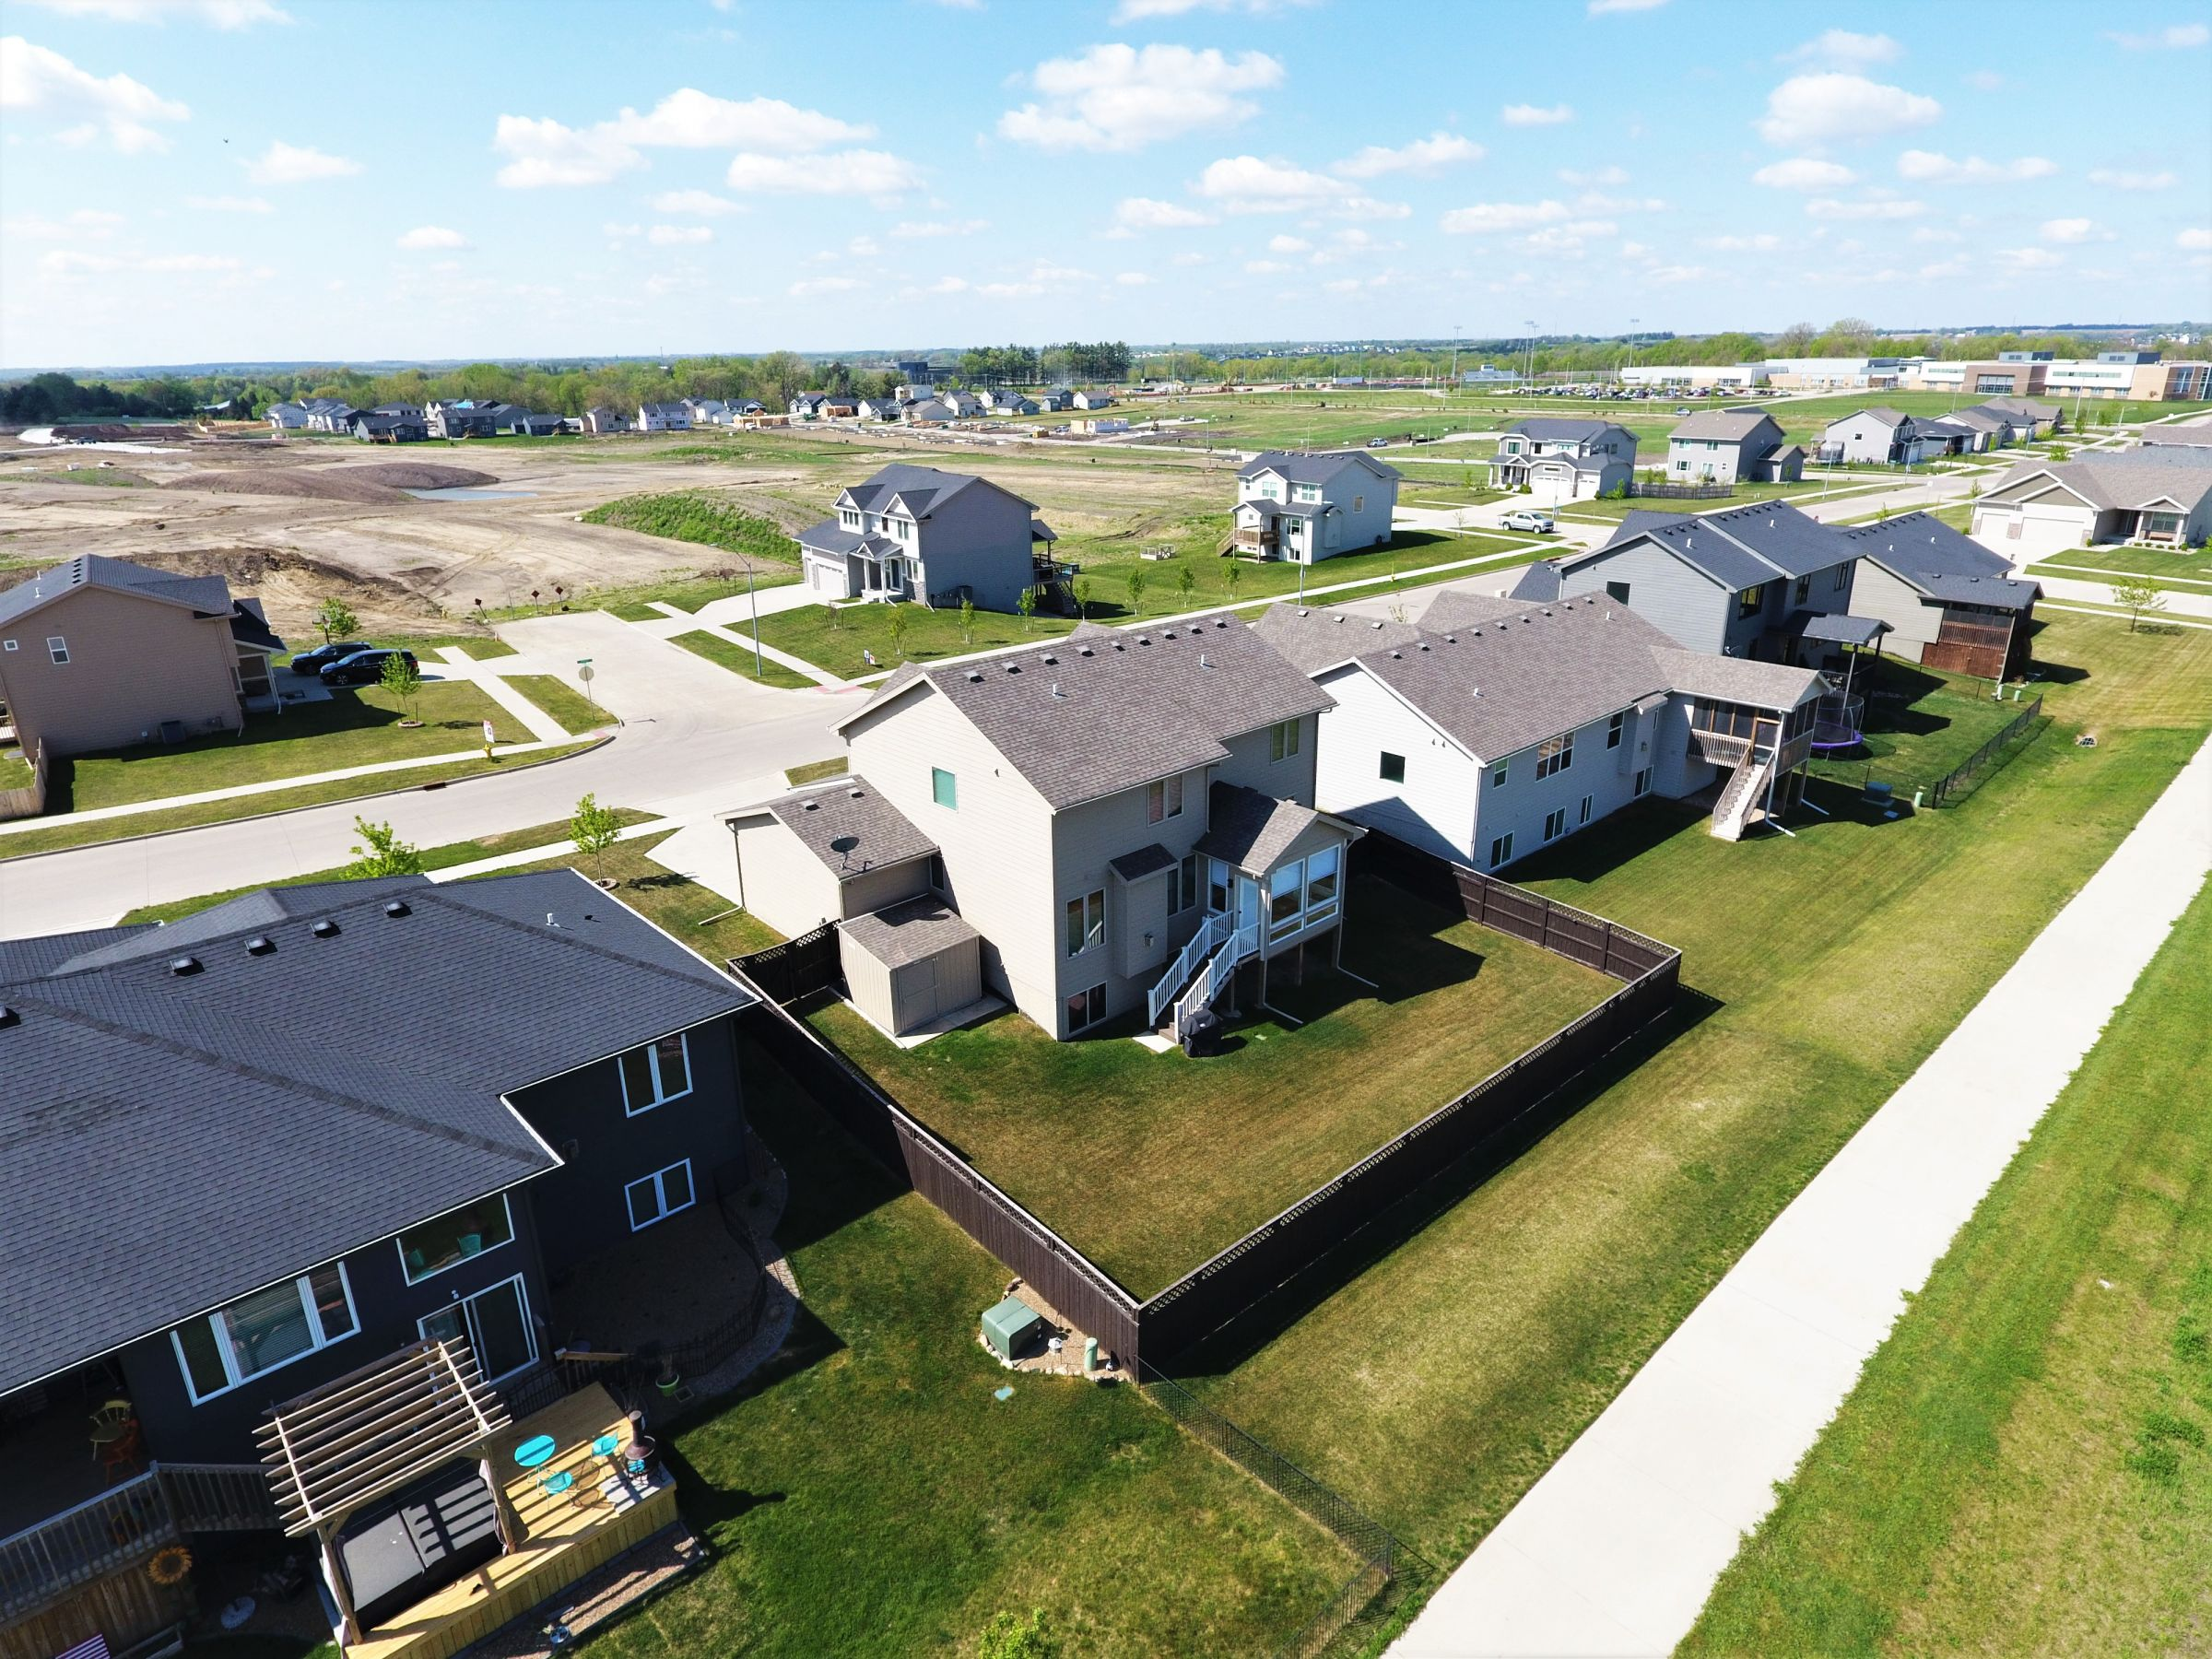 residential-dallas-county-iowa-0-acres-listing-number-15515-1-2021-05-06-213447.jpg